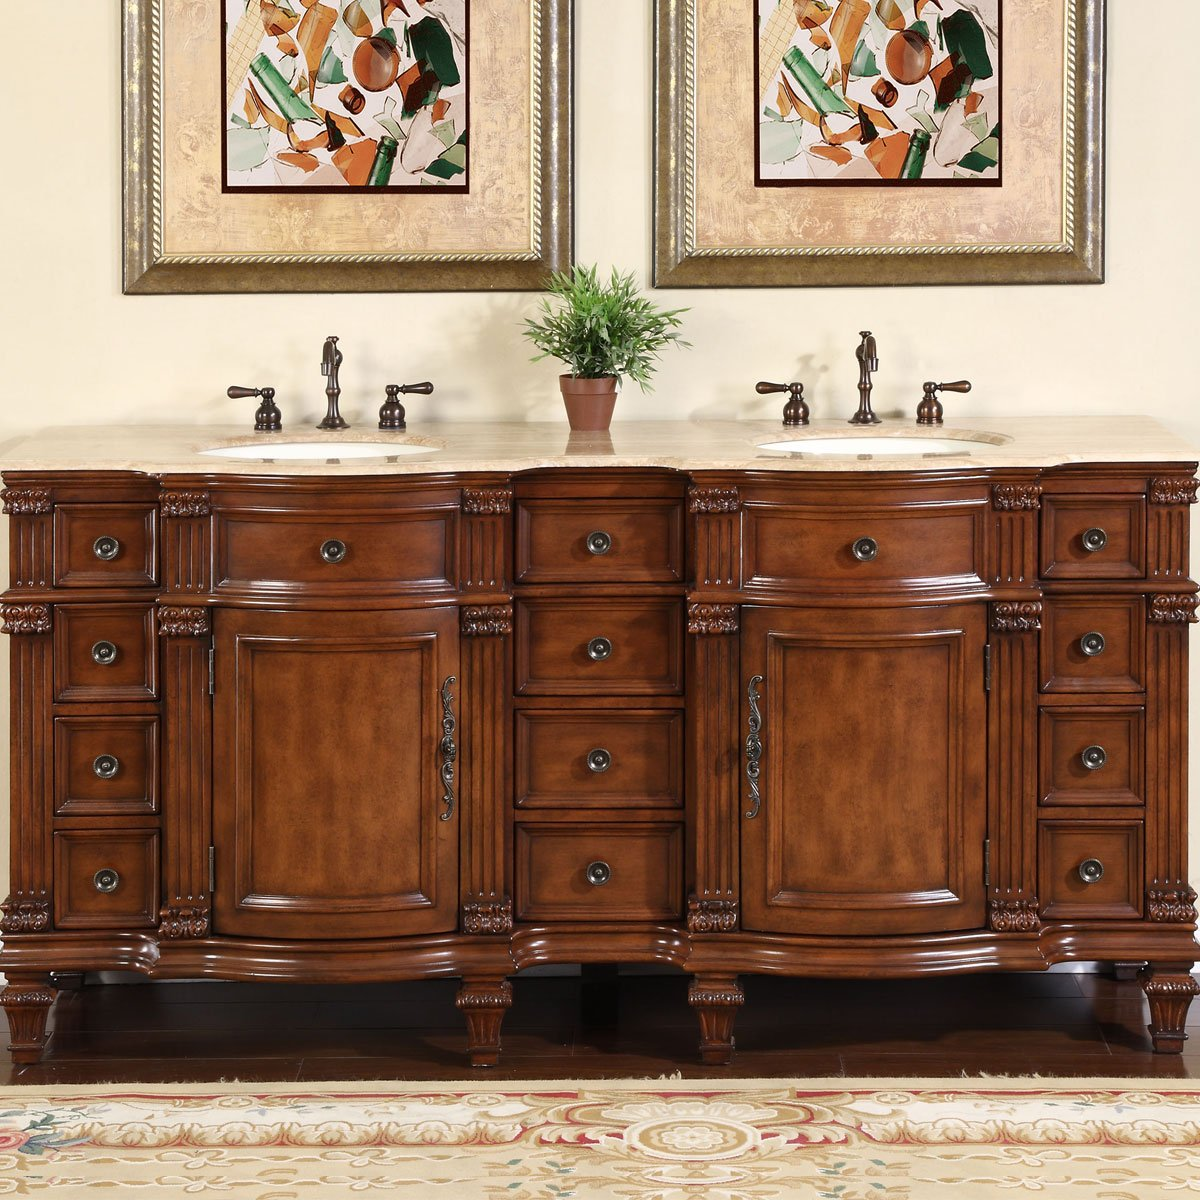 Bathroom Vanities Amazoncom Kitchen Bath Fixtures Bathroom - Who sells bathroom vanities